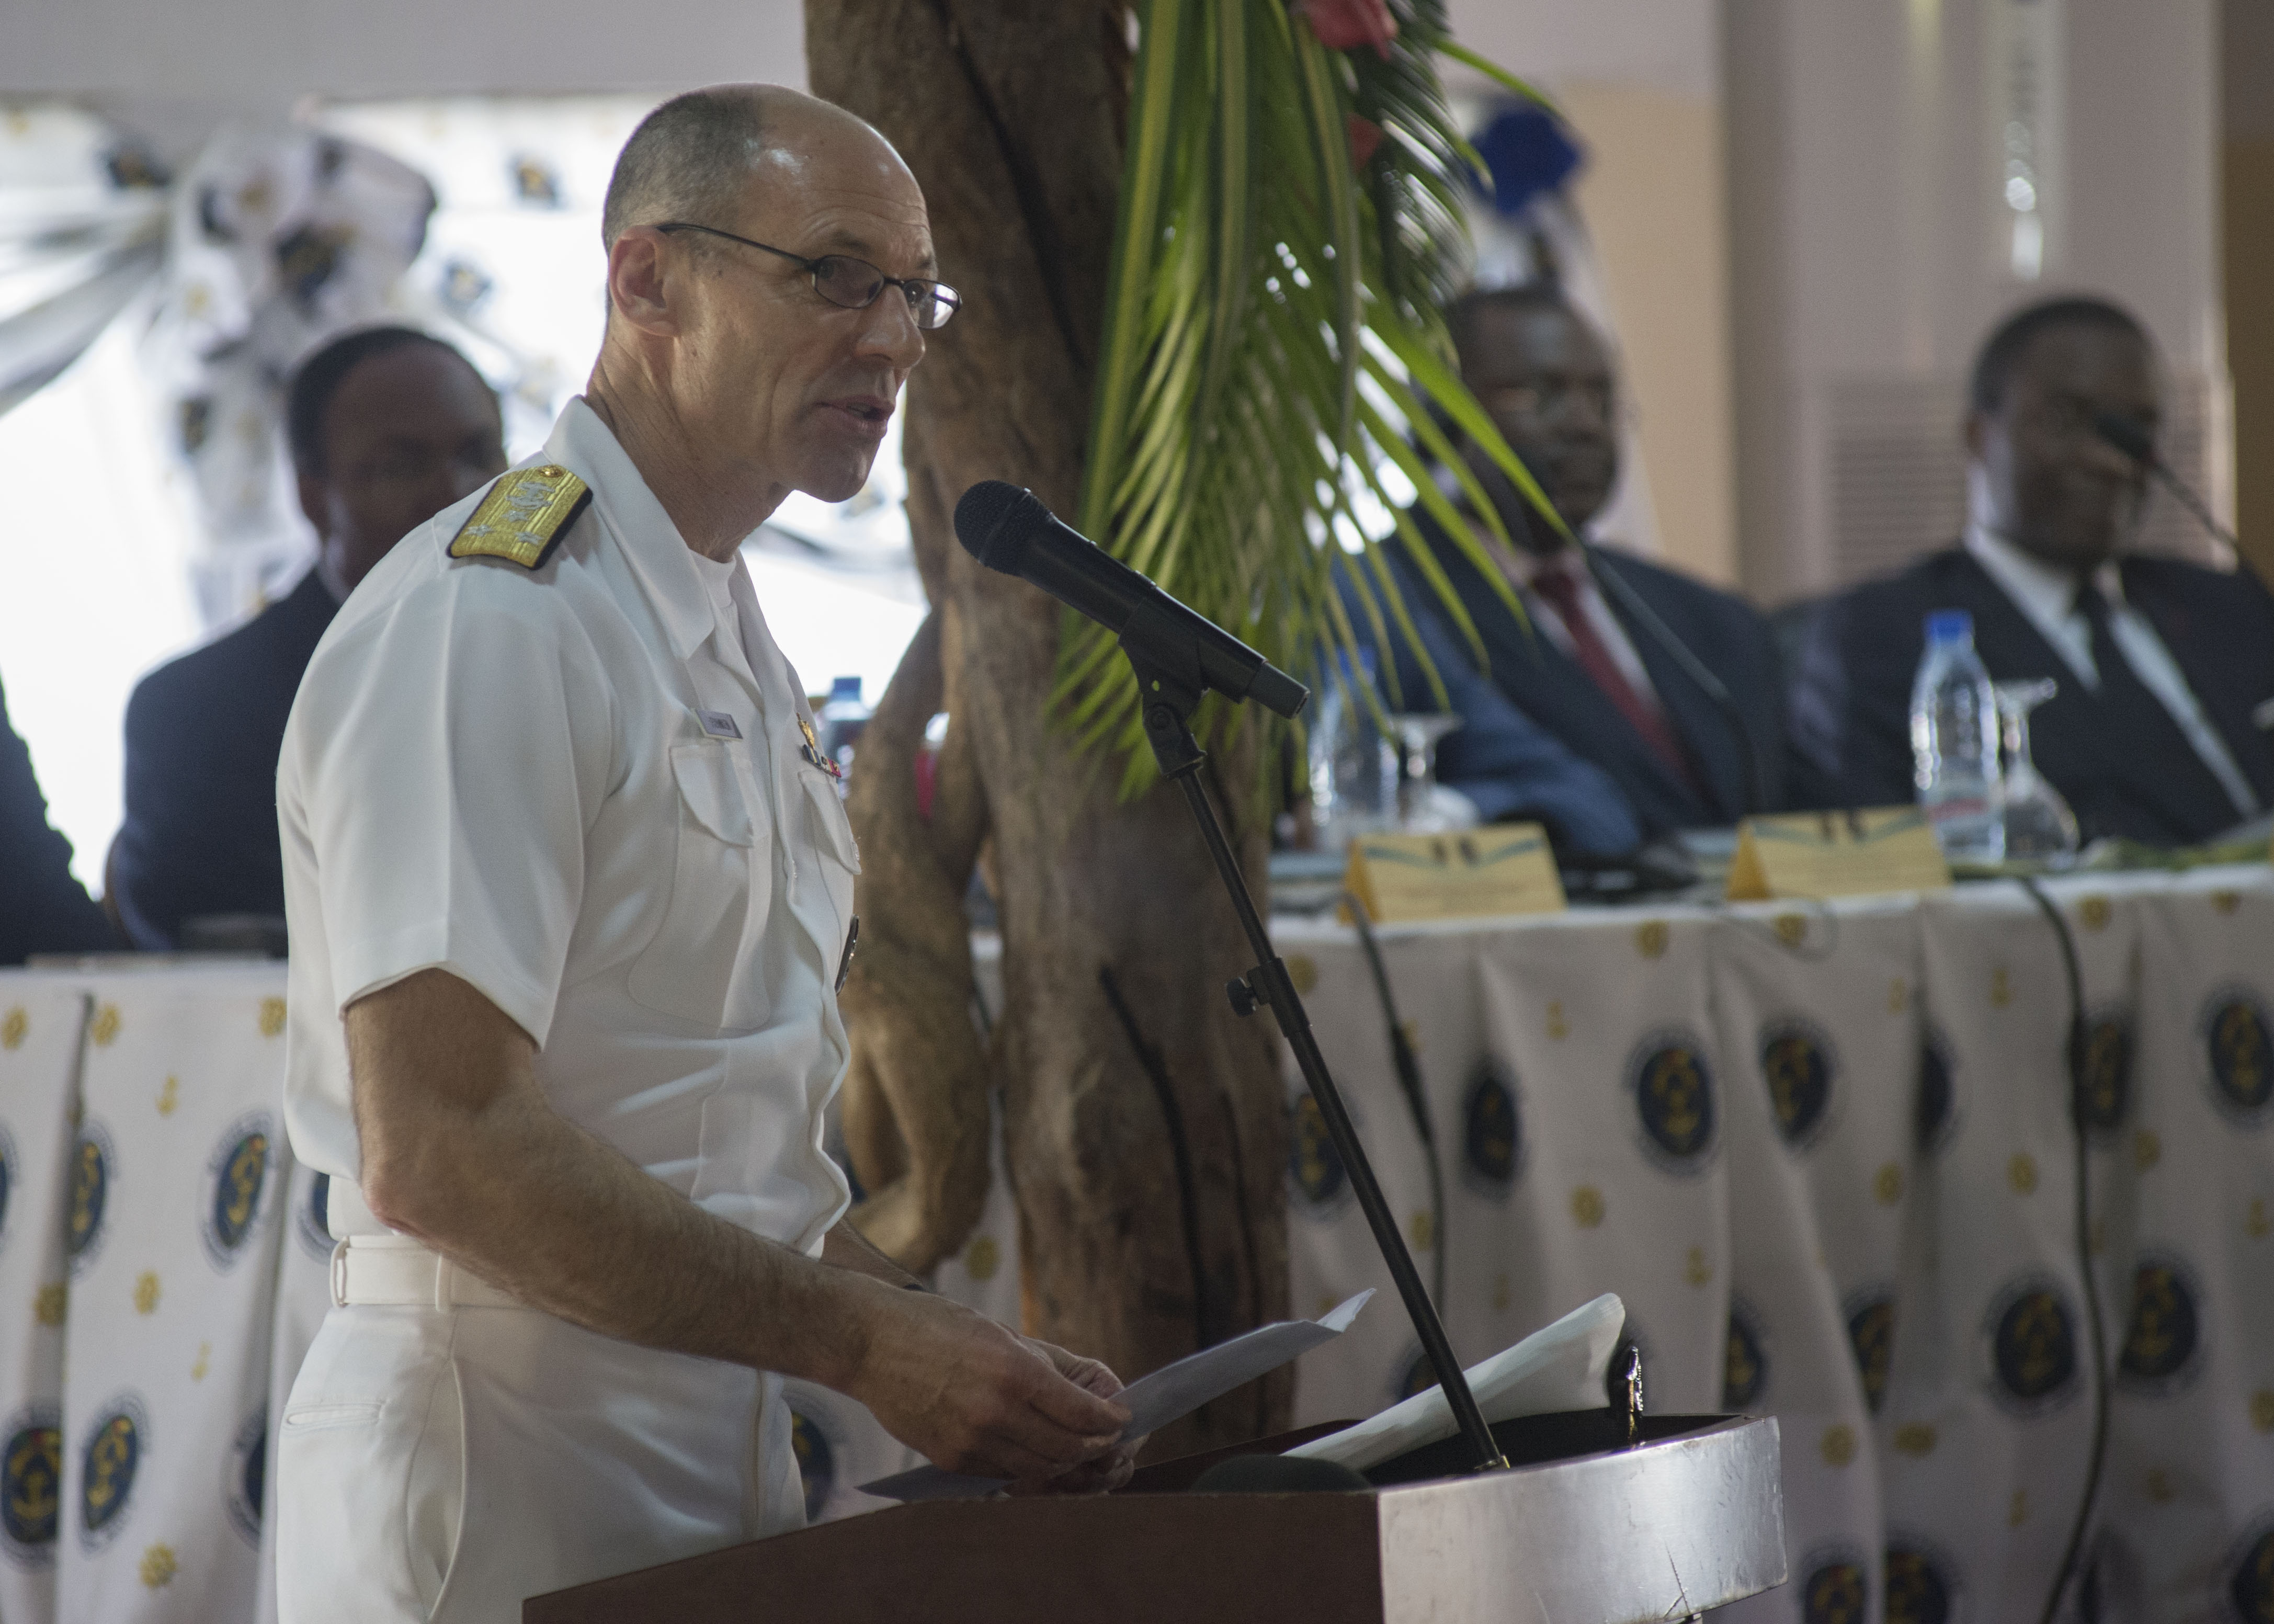 160325-N-QF605-107 DOUALA, Cameroon (March 25, 2016) - Vice Adm. Michael Franken, U.S. Africa Command deputy commander for military operations, speaks during the Exercise Obangame/Saharan Express 2016 closing ceremony in Douala, Cameroon, March 25, 2016. Obangame/Saharan Express, one of three African regional express series exercises facilitated by U.S. Naval Forces Europe-Africa/U.S. 6th Fleet, seeks to increase regional cooperation, maritime domain awareness, information sharing practices and improve interoperability among participating forces in order to enhance maritime security and regional economic stability. (U.S. Navy photo by Mass Communication Specialist 1st Class Amanda Dunford/Released)